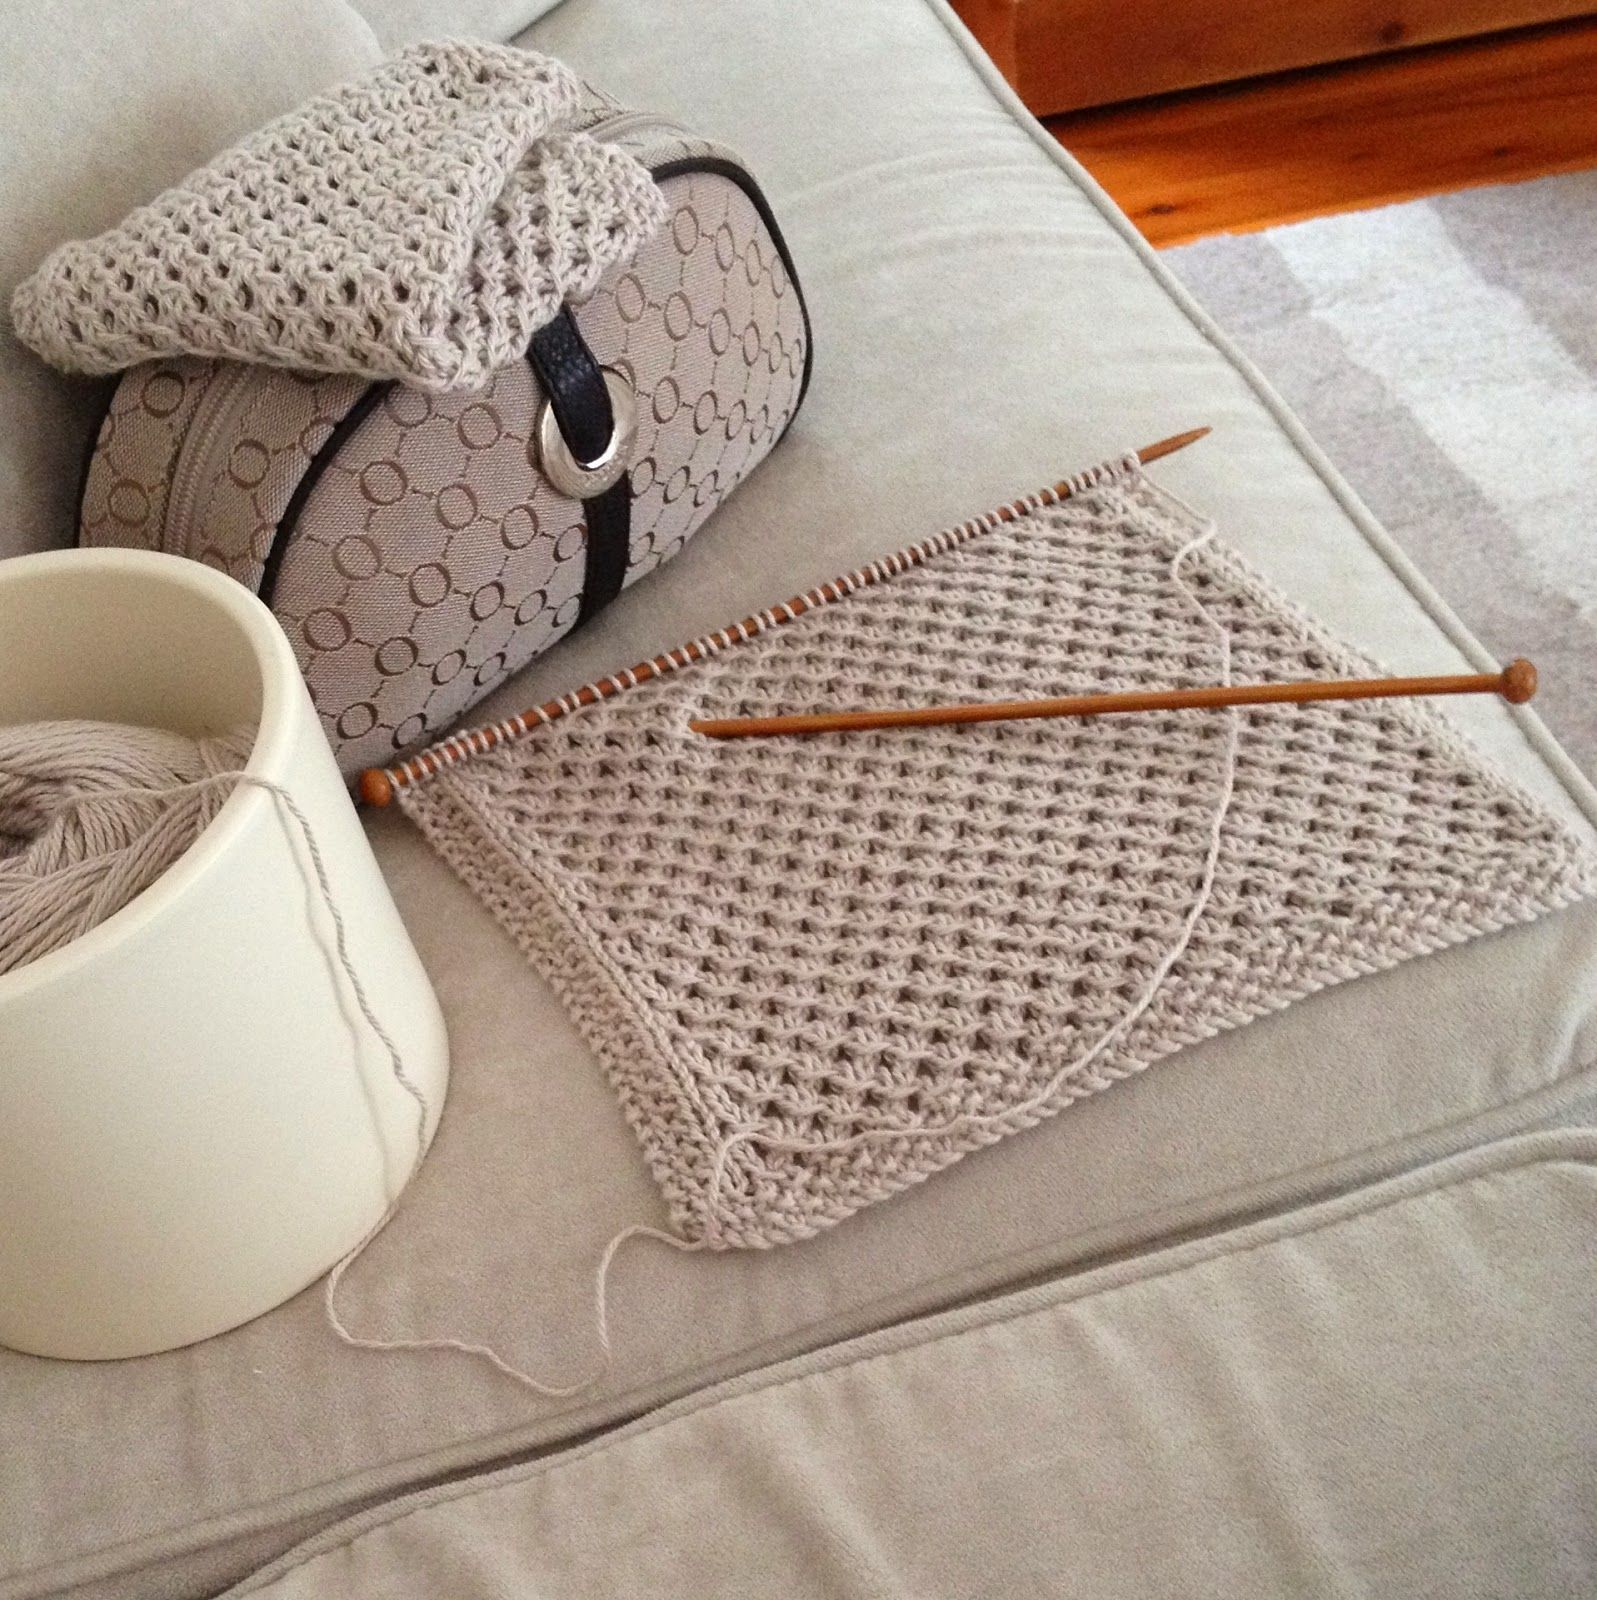 My Oroton knitting bag has inspired me to create a washer pattern to ...